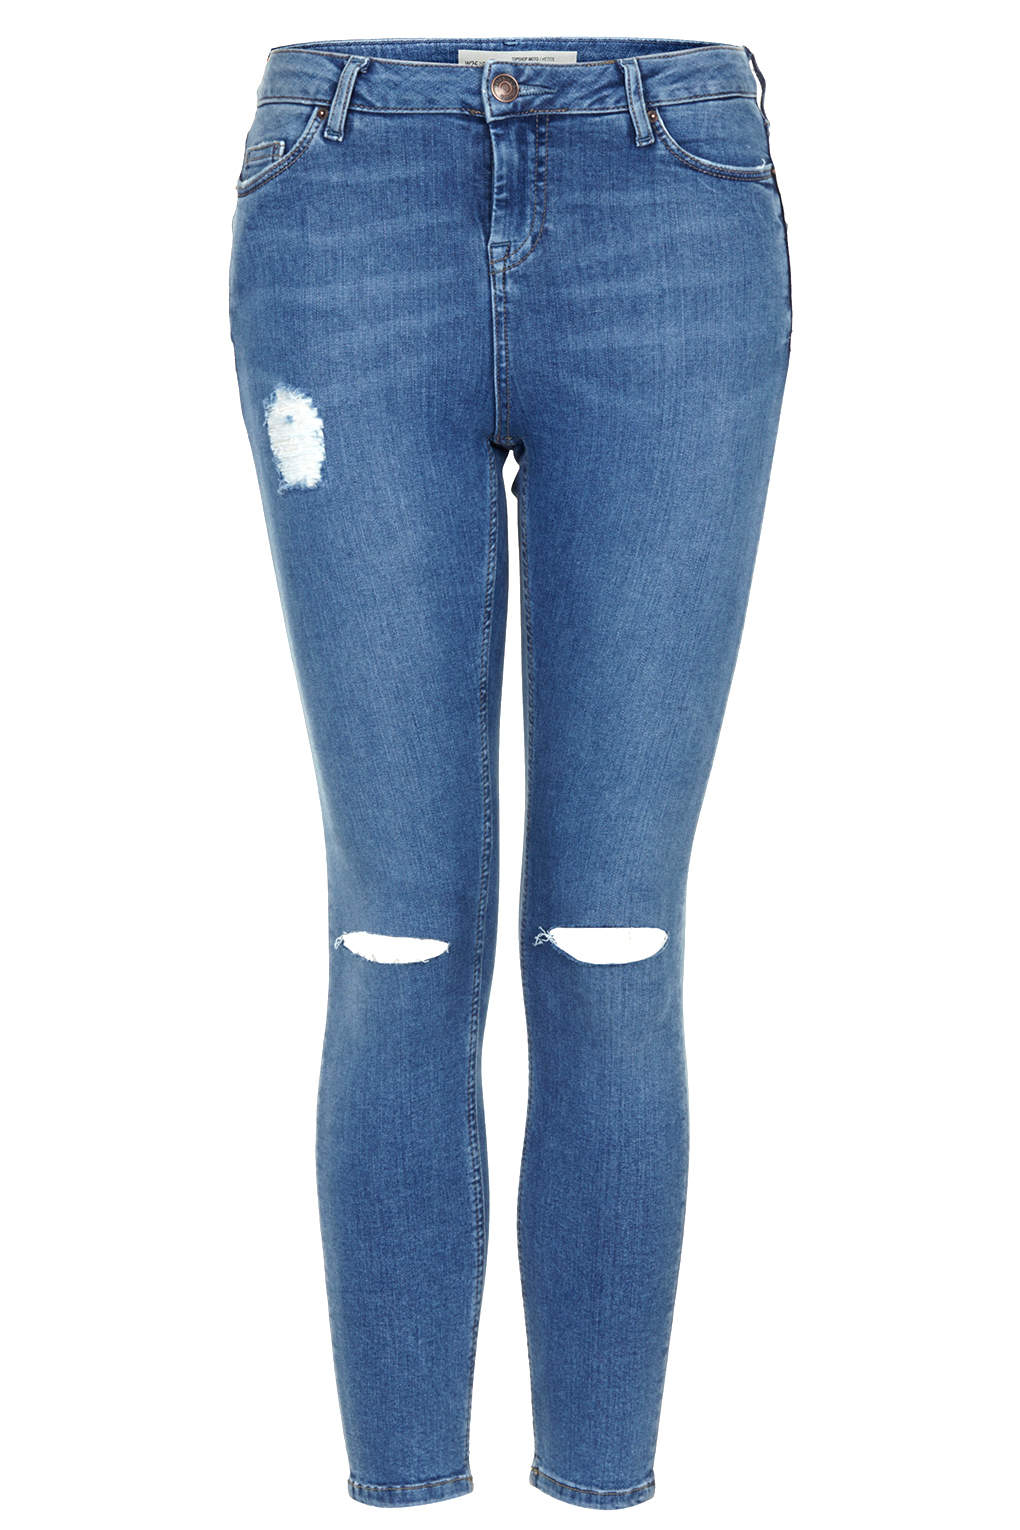 topshop petite moto stone wash ripped jamie jeans in blue